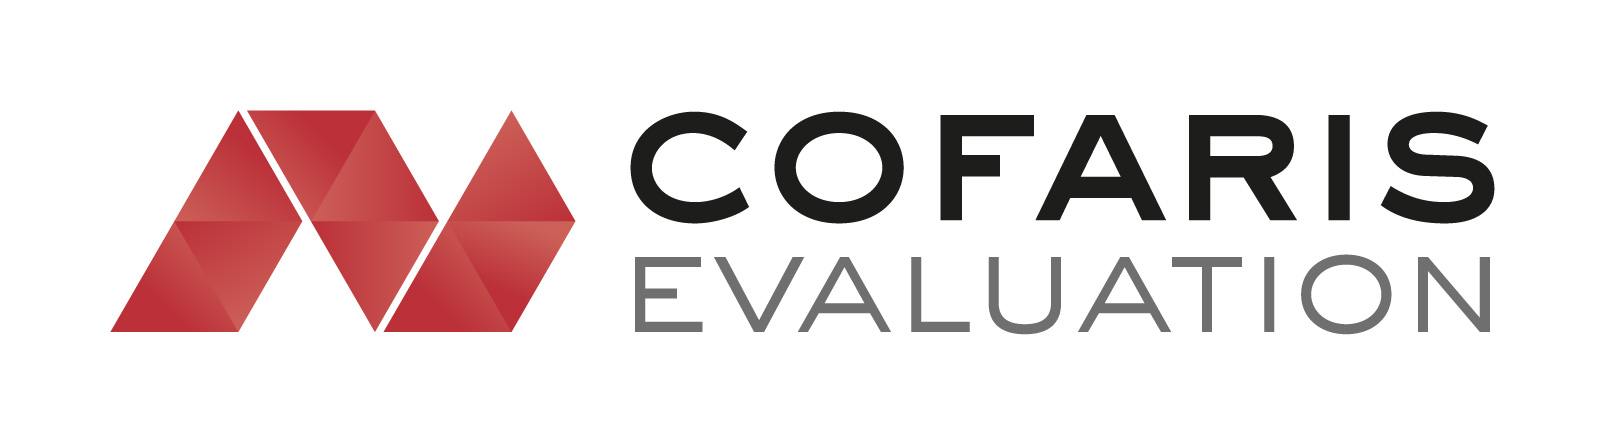 tl_files/editeur/Images/COFARIS EVALUATION - Logotype horizontal couleur.jpg